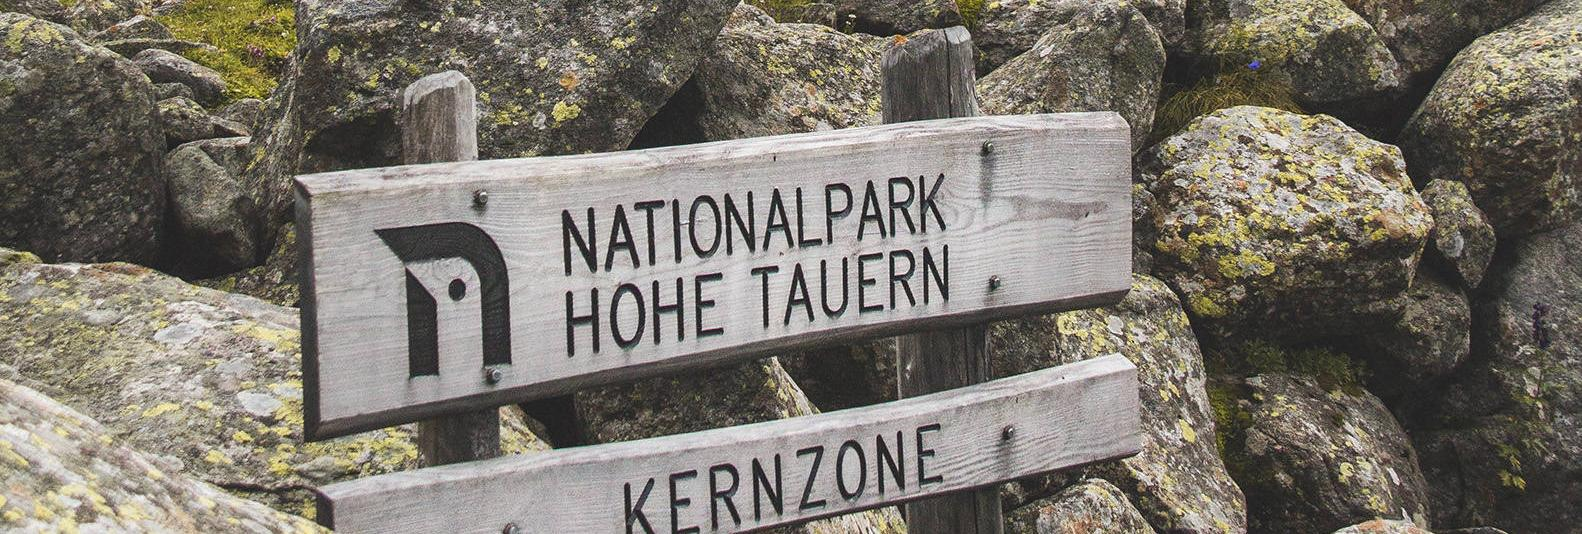 Sign Core Zone Hohe Tauern National Park